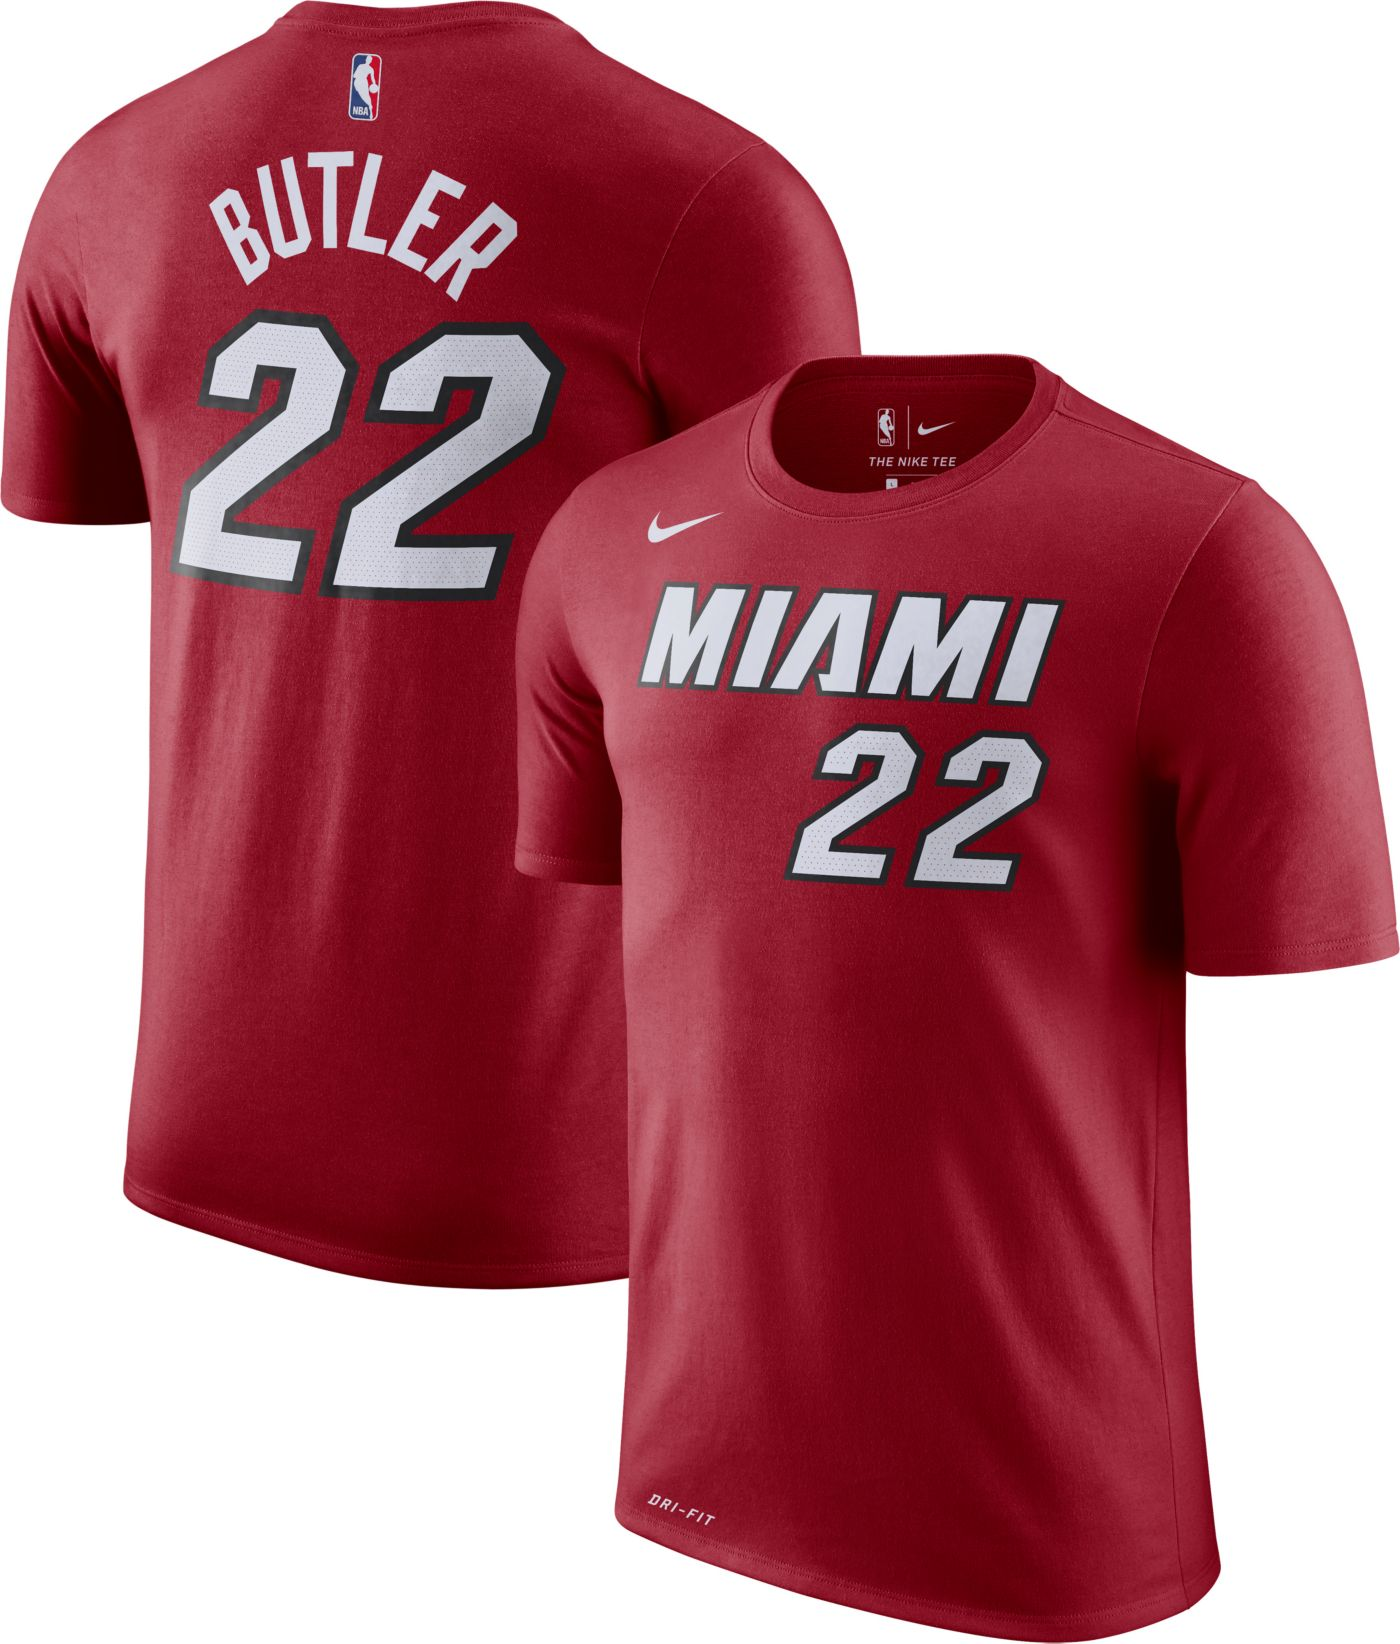 Nike Youth Miami Heat Jimmy Butler #22 Dri-FIT Statement Red T-Shirt